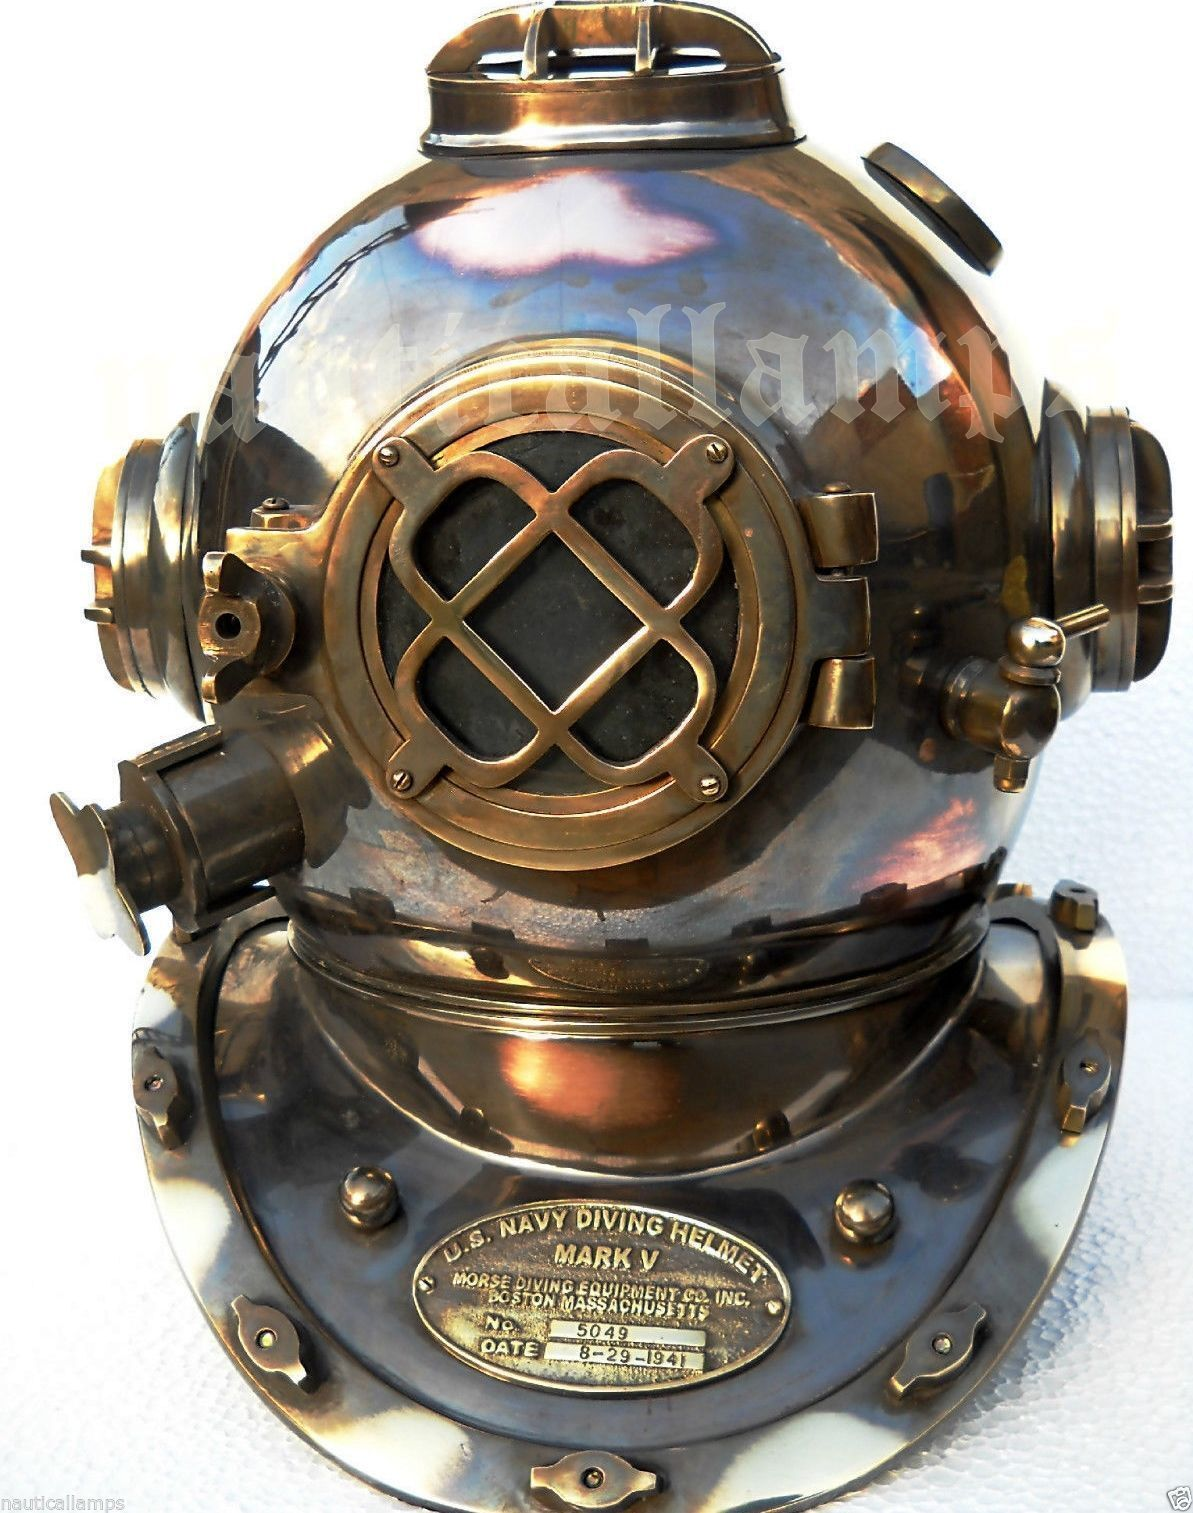 Vintage U.S navy divers diving helmet mark v full size deep sea scuba gift item